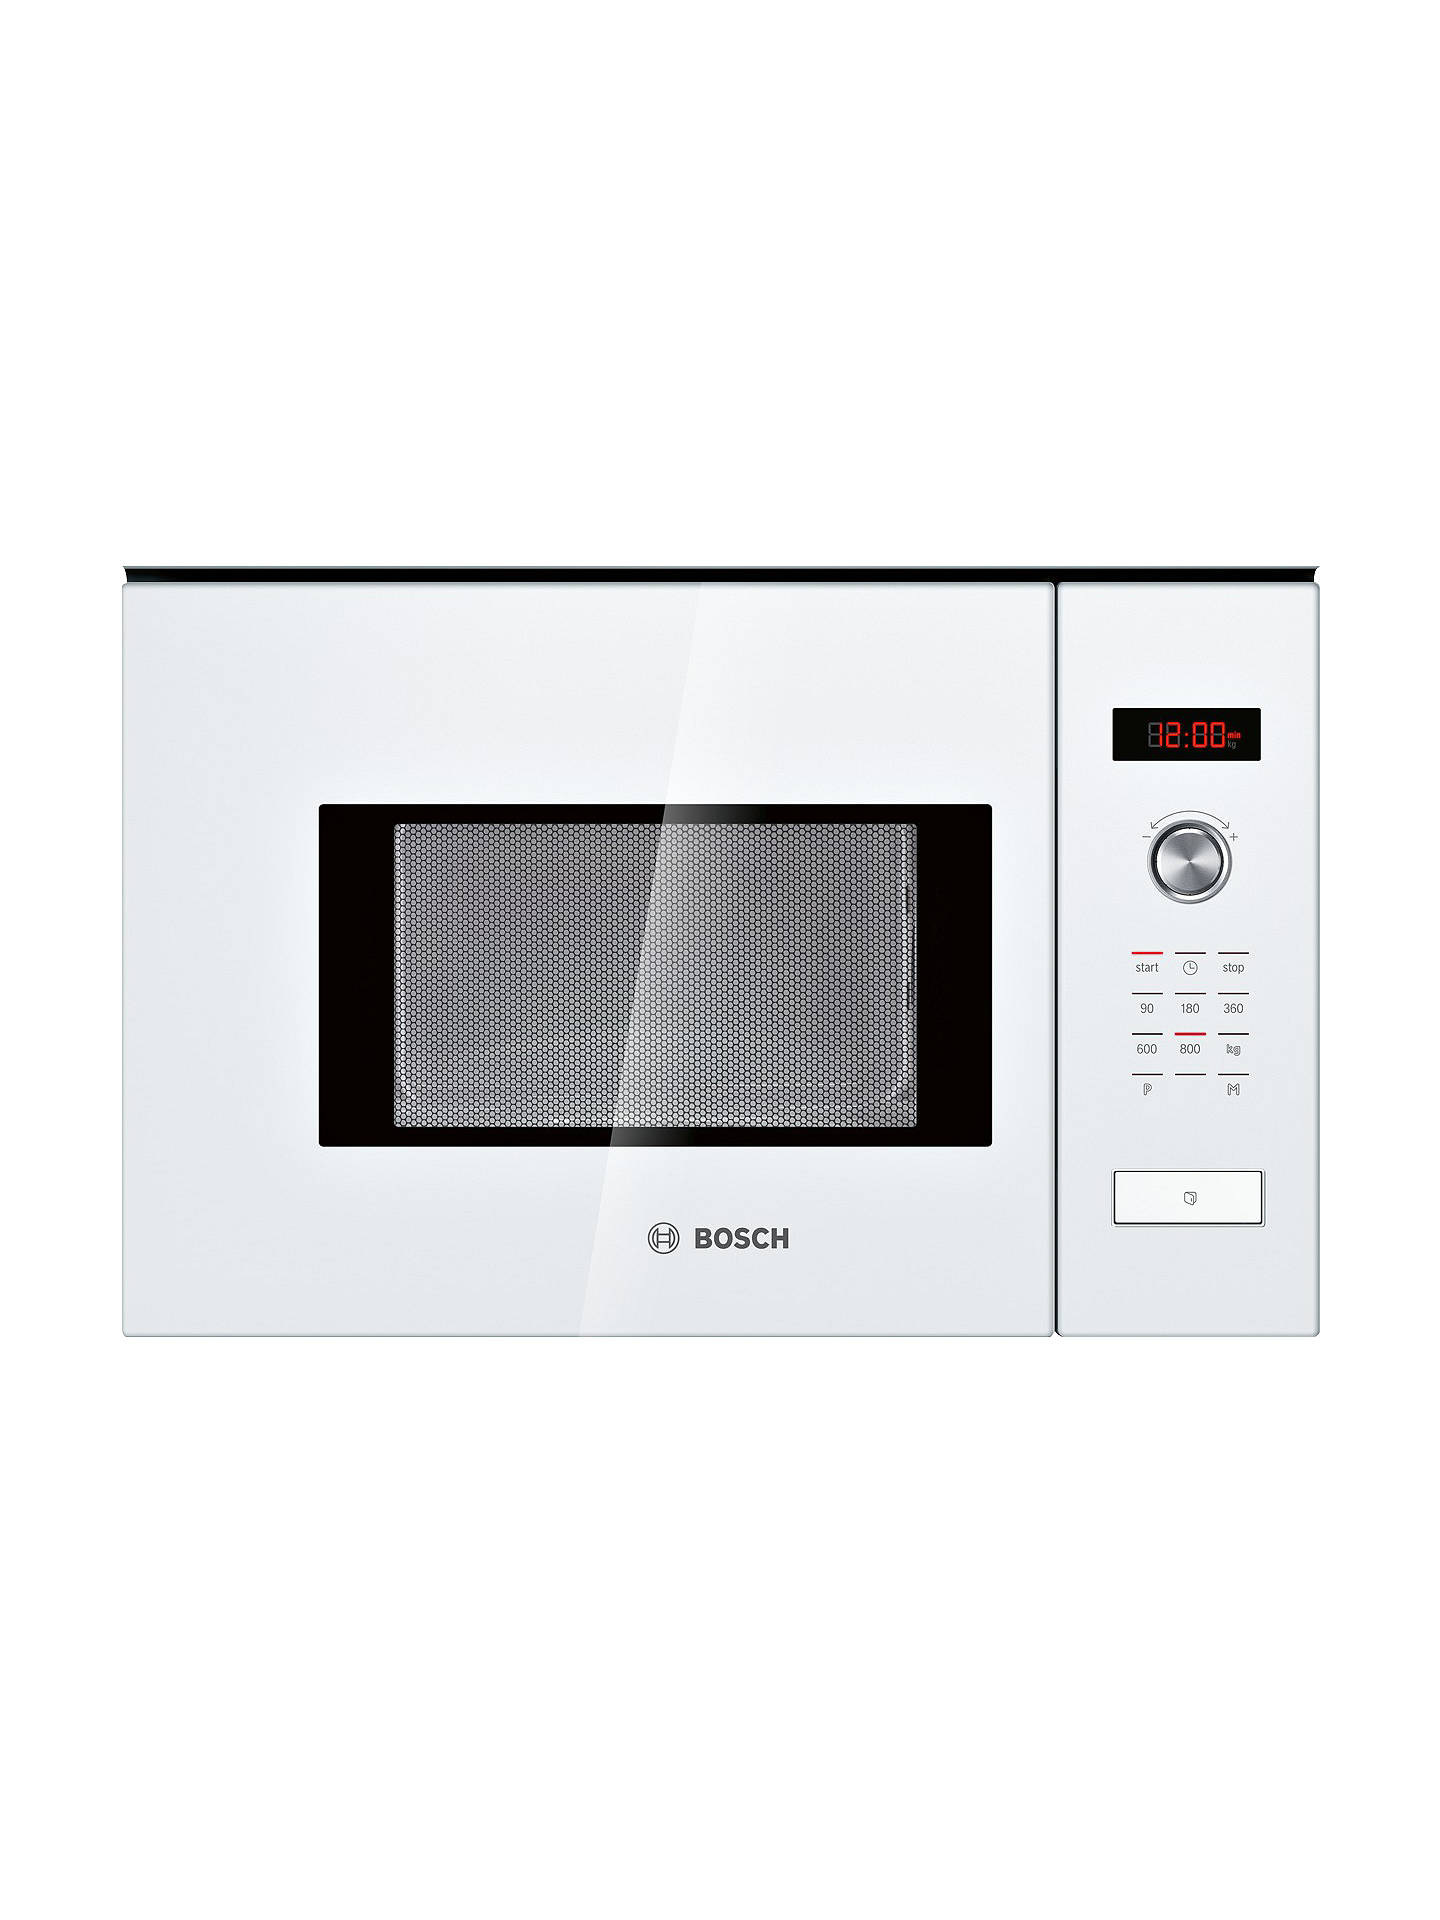 Bosch Hmt75m624b Built In Microwave Oven White Online At Johnlewis